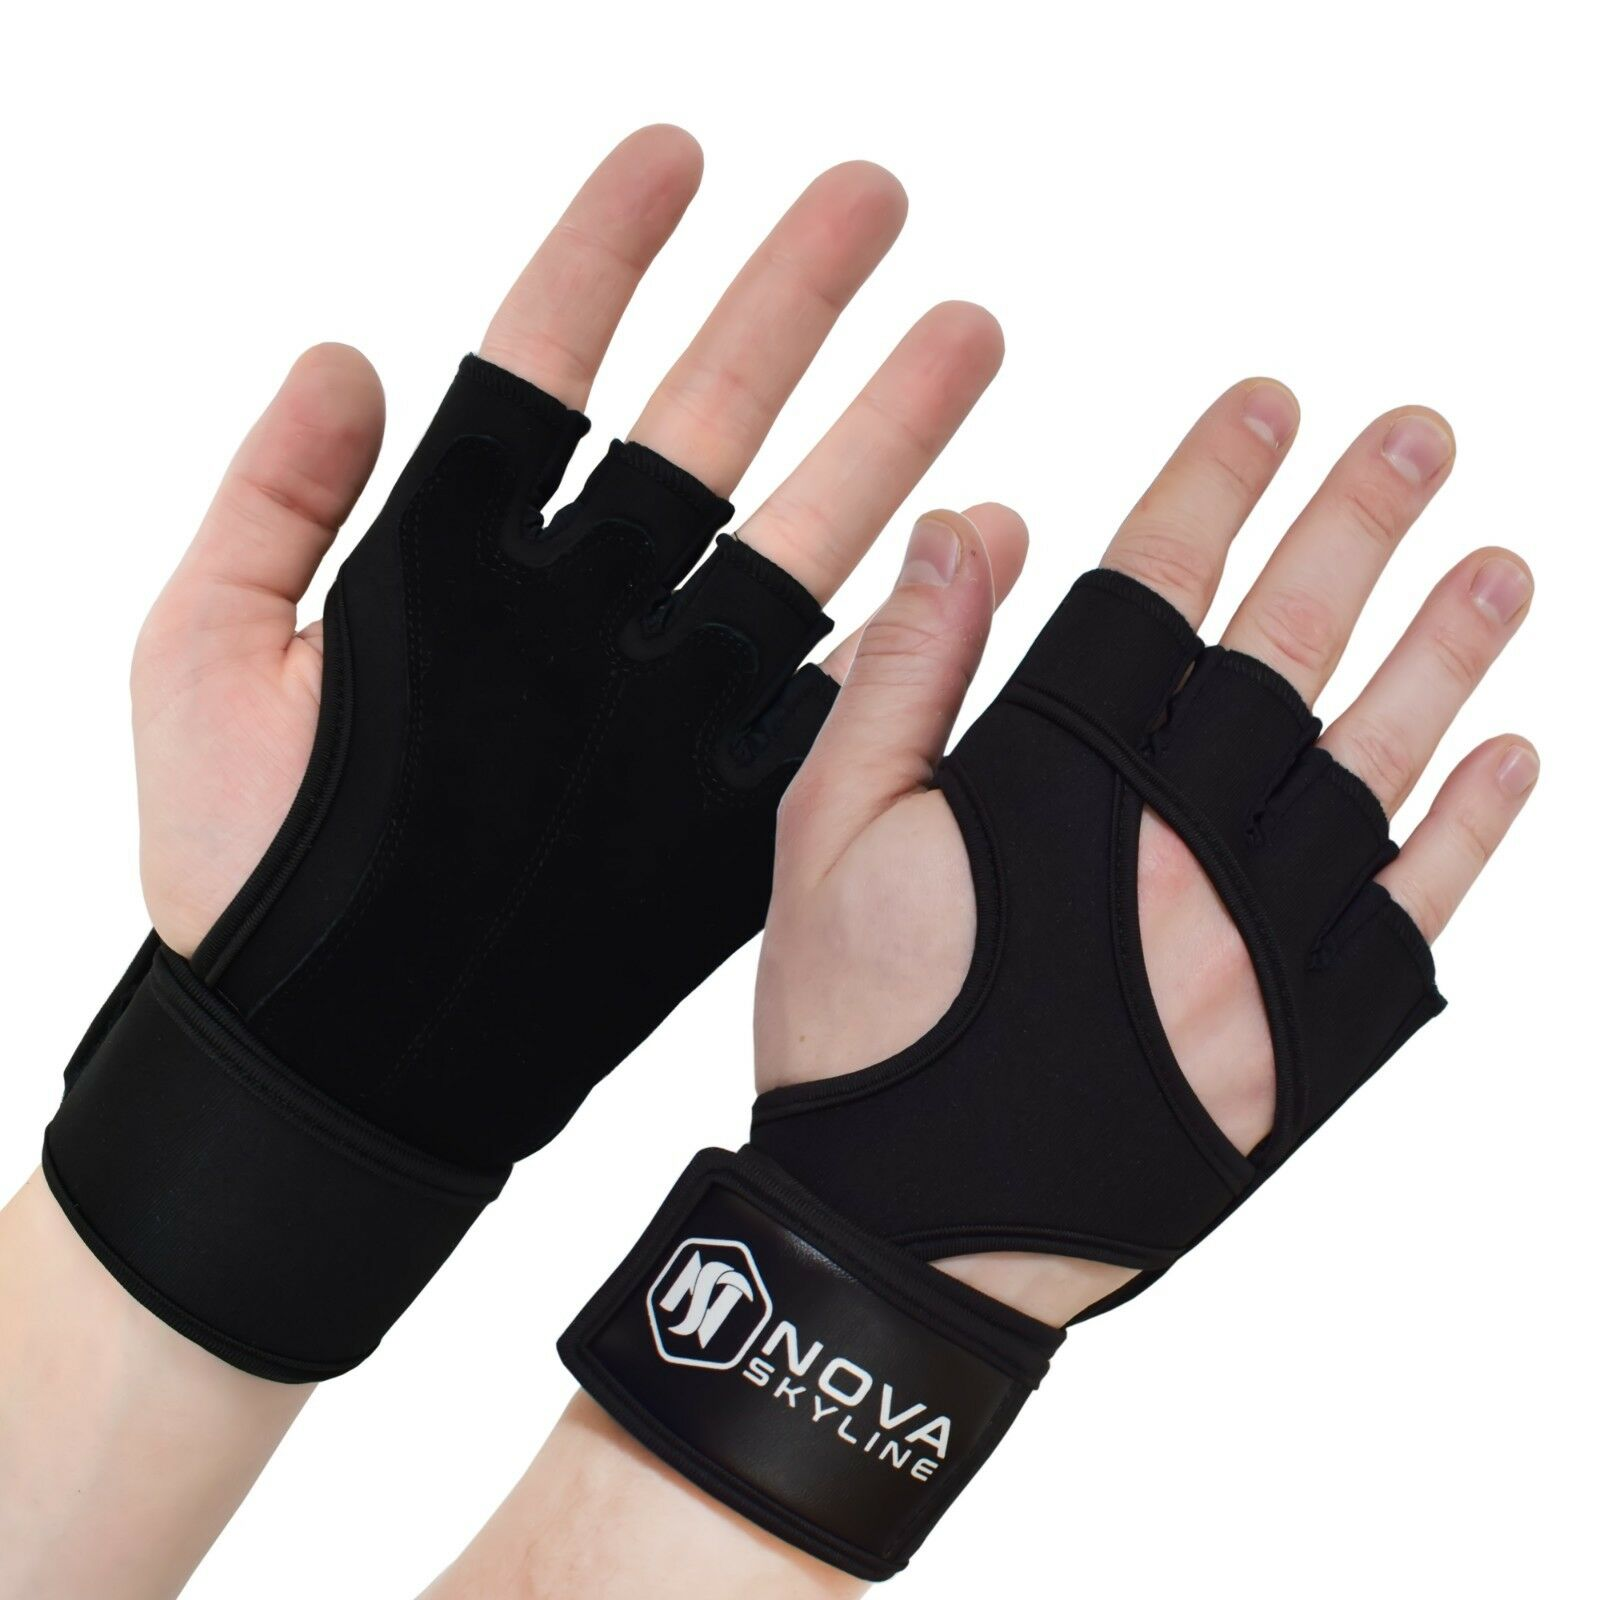 Gym, Weightlifting, Exercise, Fitness & CrossFit Gloves - Pi